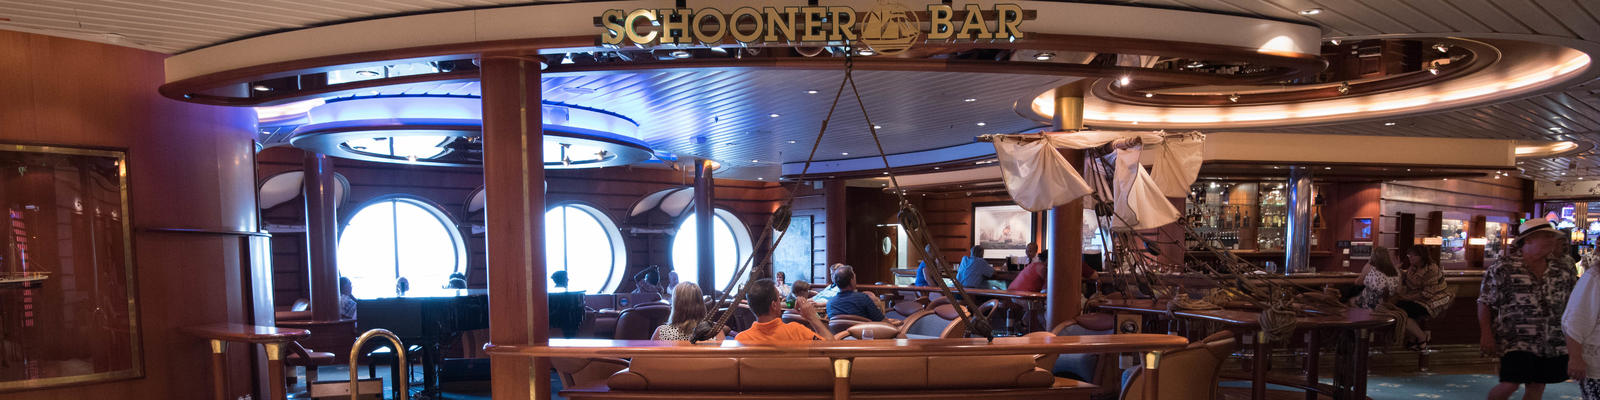 Schooner Bar on Freedom of the Seas (Photo: Cruise Critic)